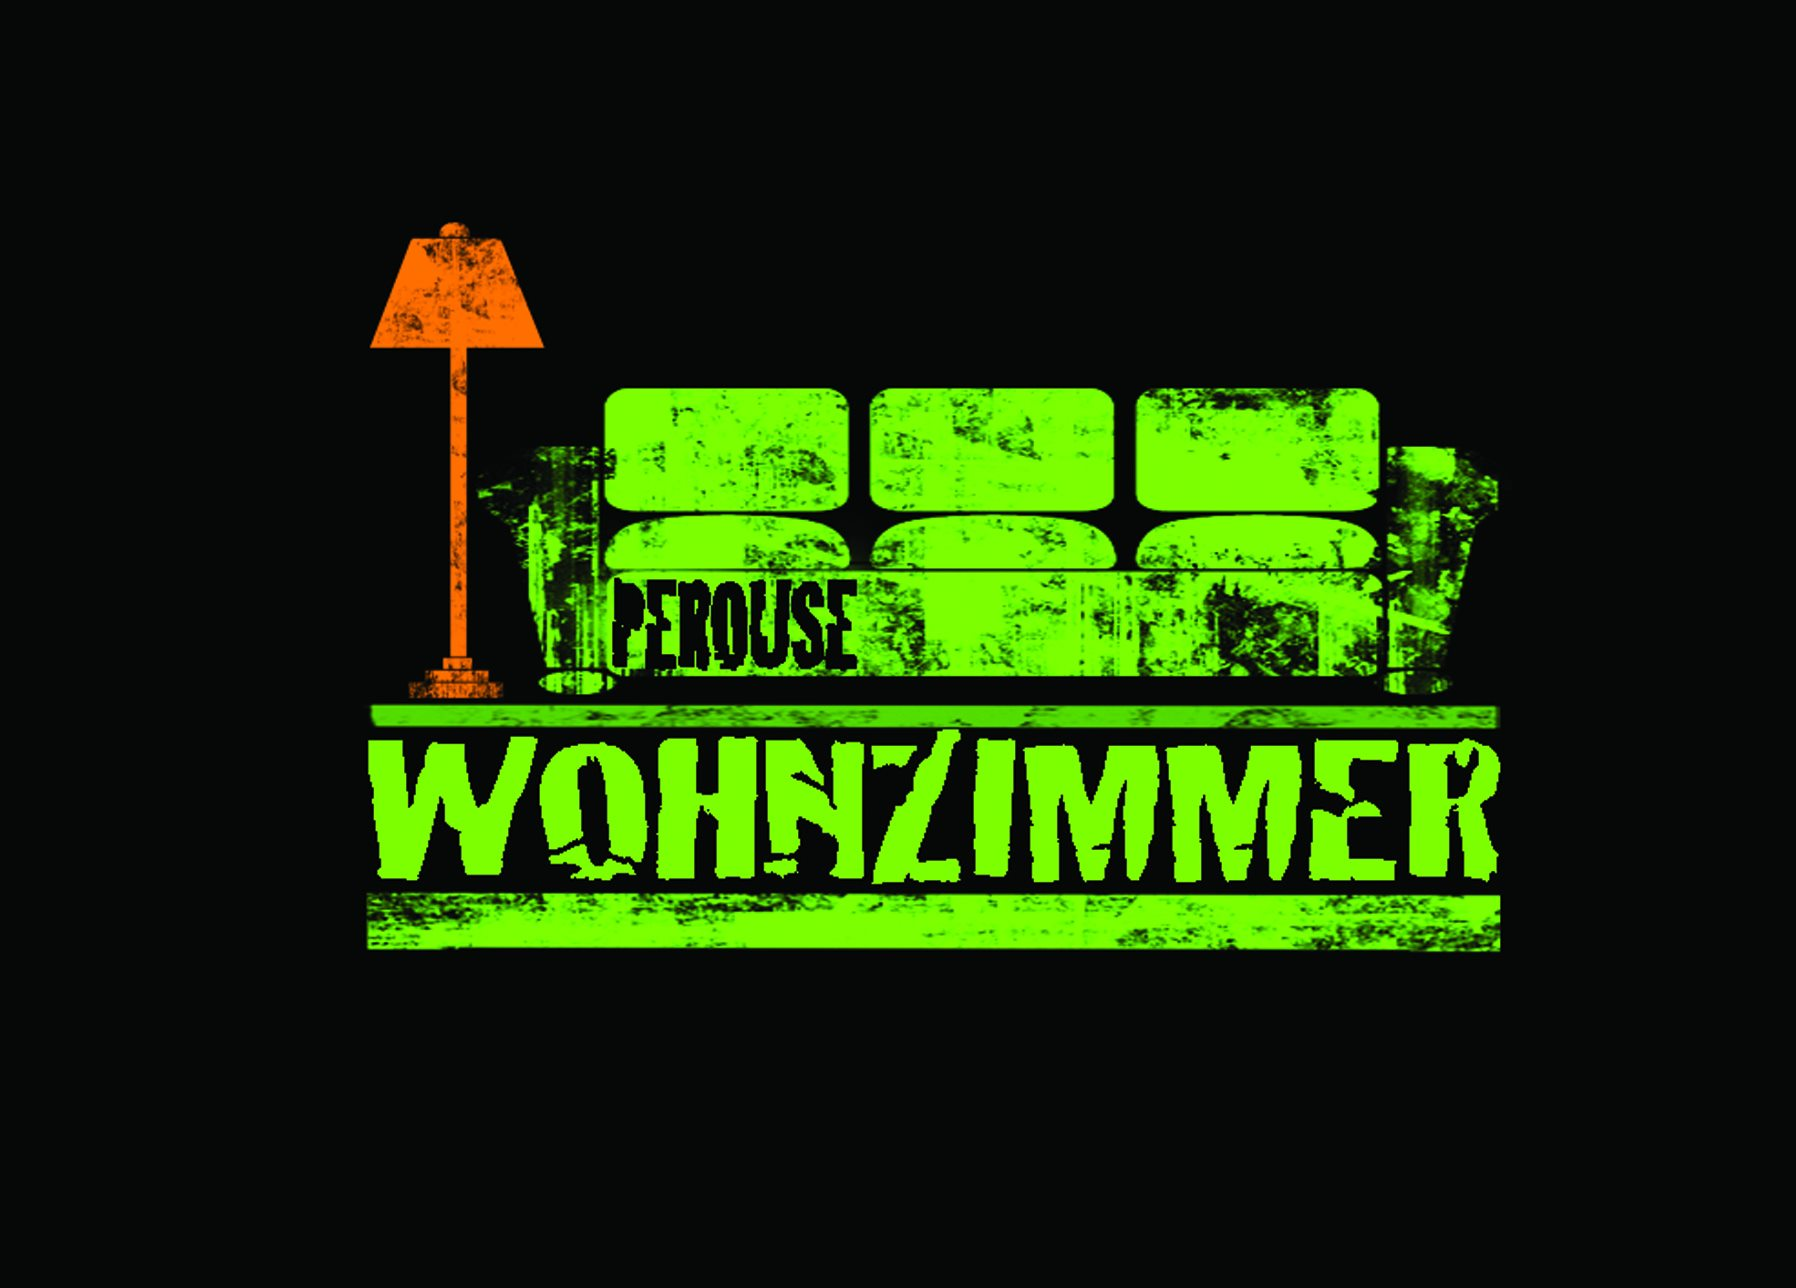 Wohnzimmer Perouse